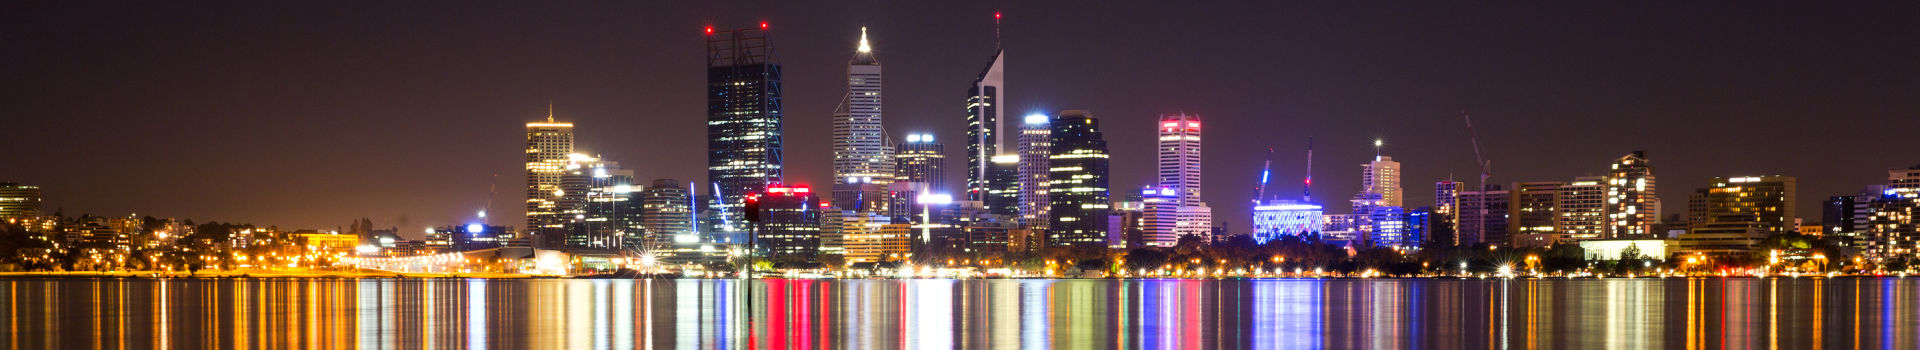 Redseason - Holidays - Perth city skyline at night